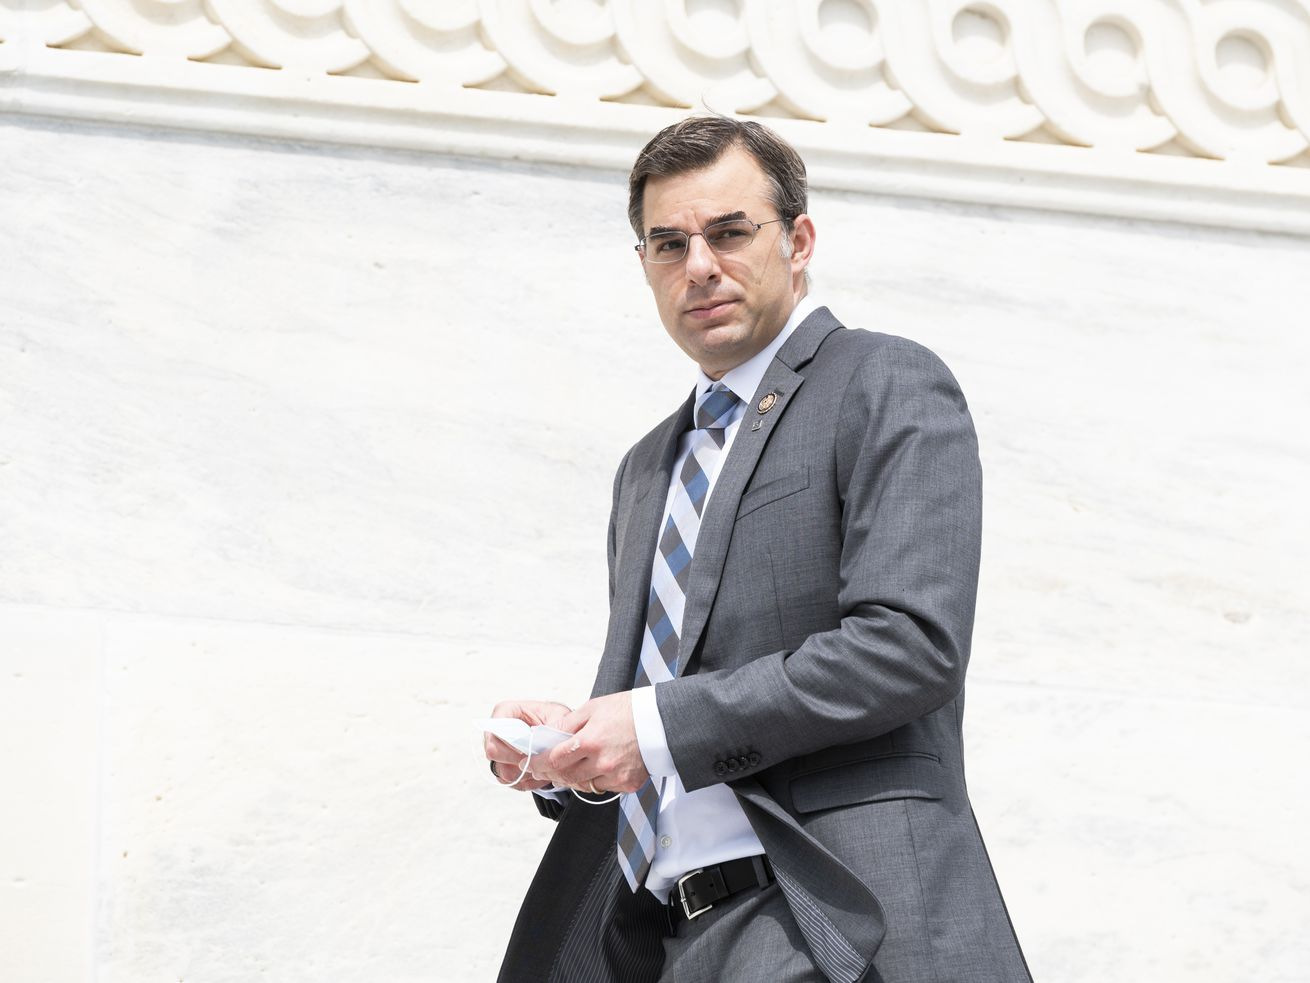 Amash, in a gray suit and gray-and-blue striped tie, holds a surgical mask as he walks.